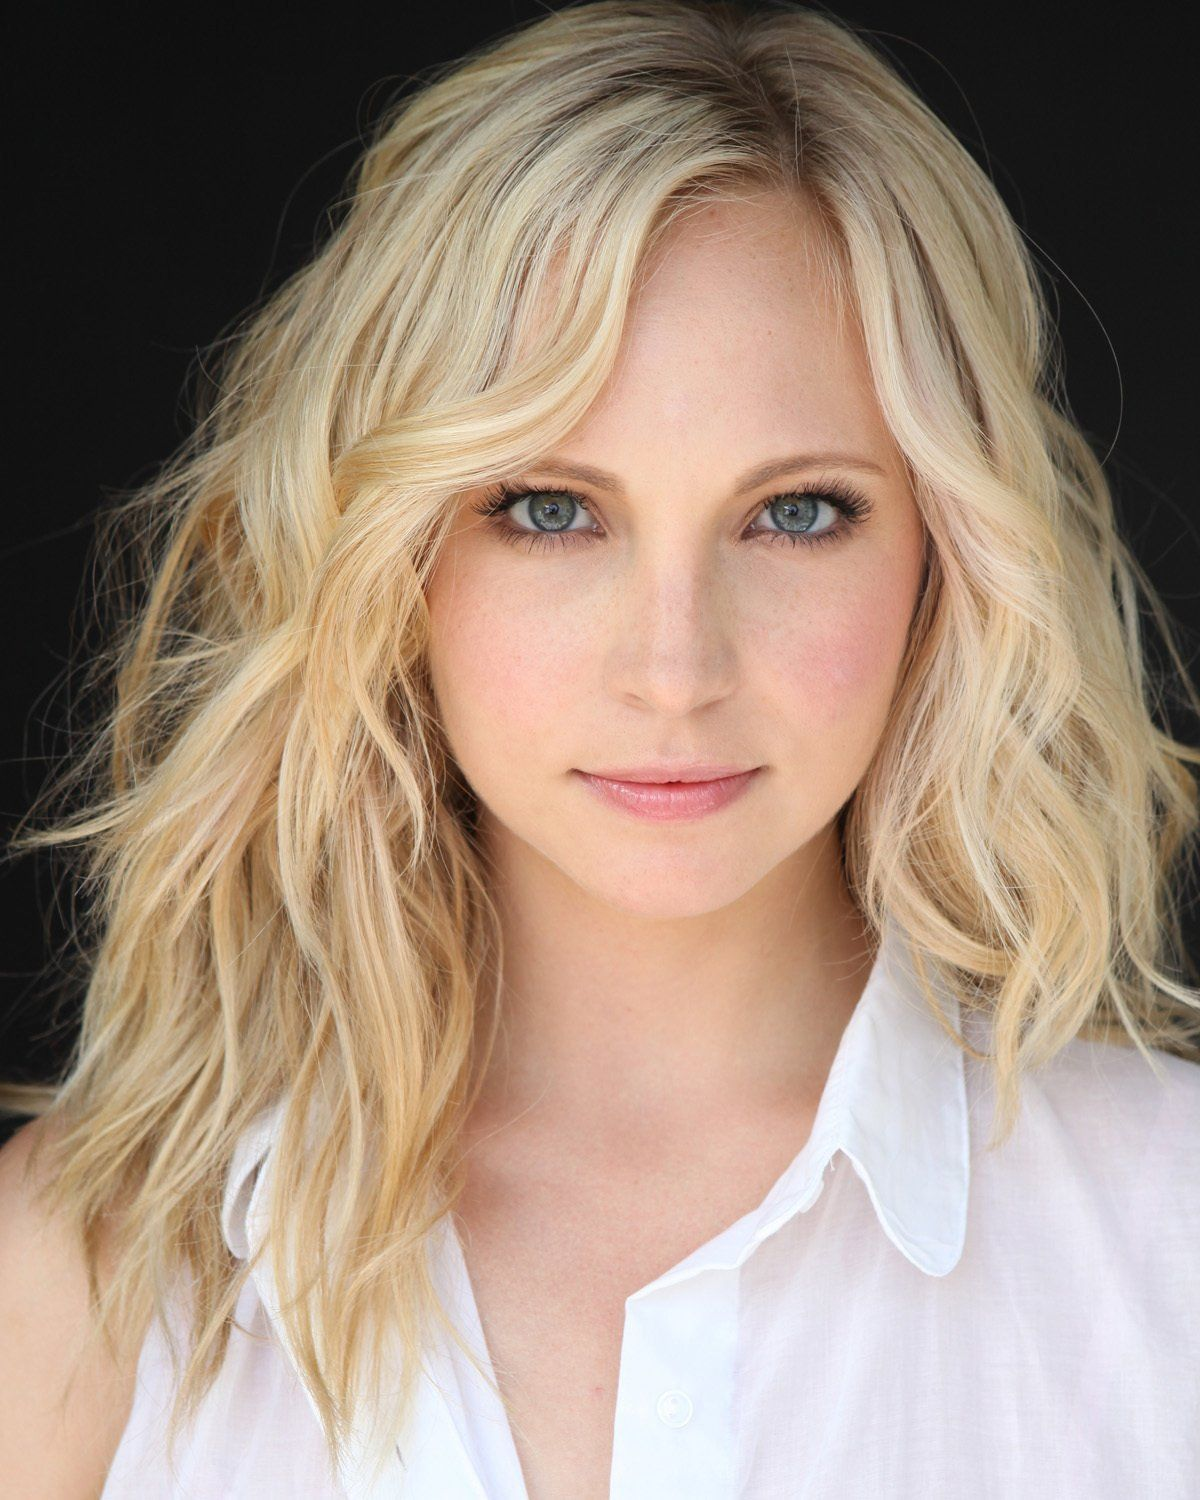 caroline forbes | candace accola the vampire diaries